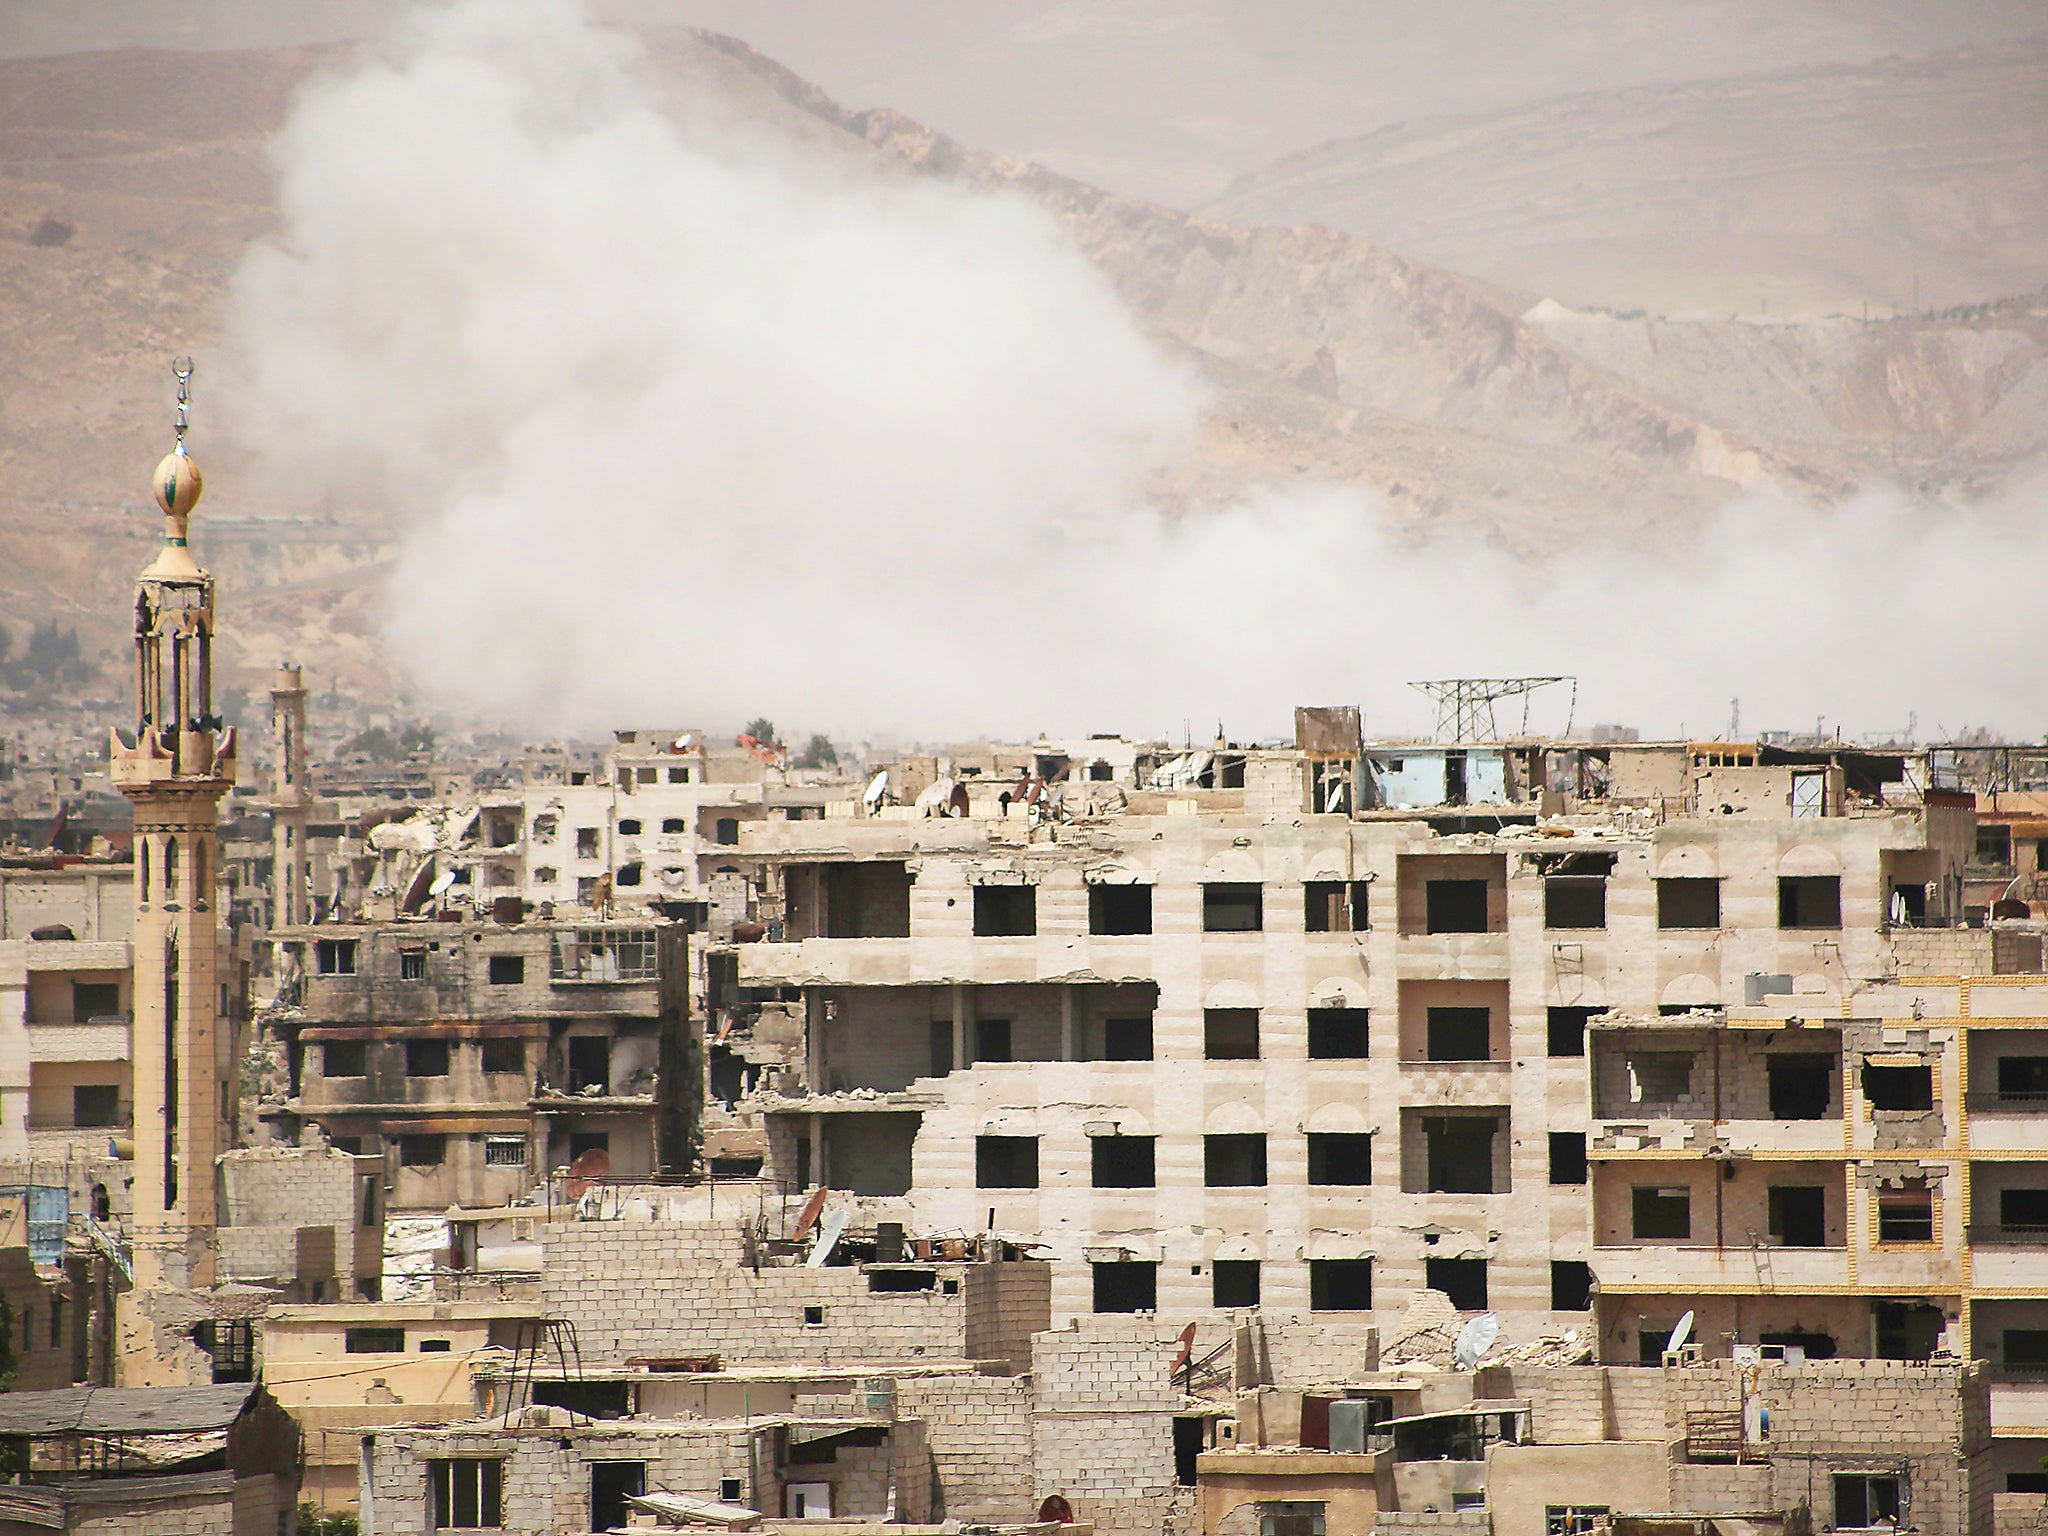 Can Syria ever be repaired after its war comes to an end?